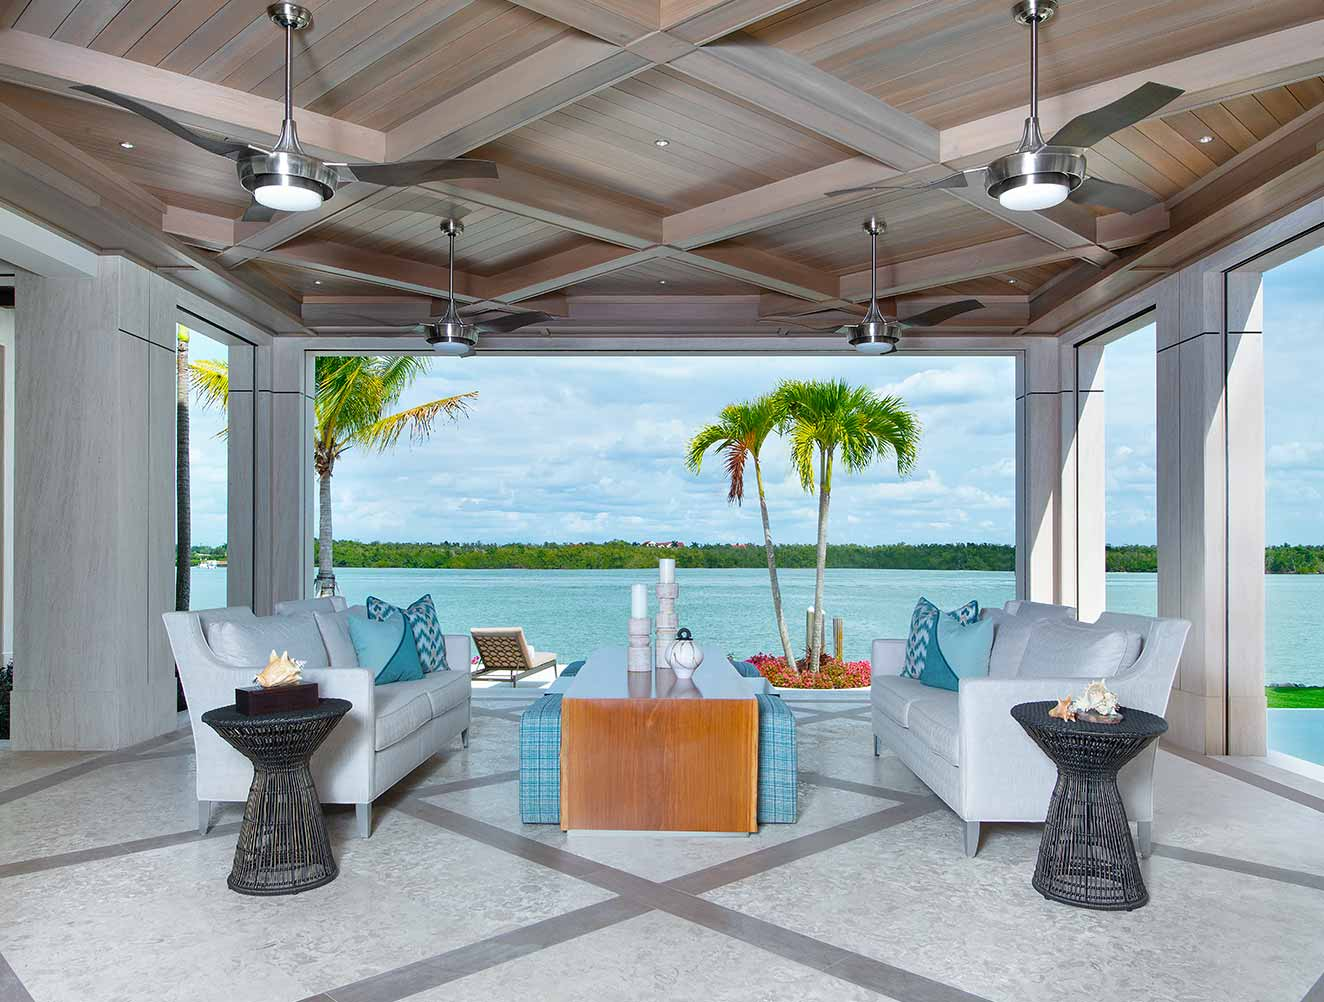 Outdoor Modern Ceiling Design Collection in Naples Florida homes. Designed by Kukk Architecture & Design Naples.